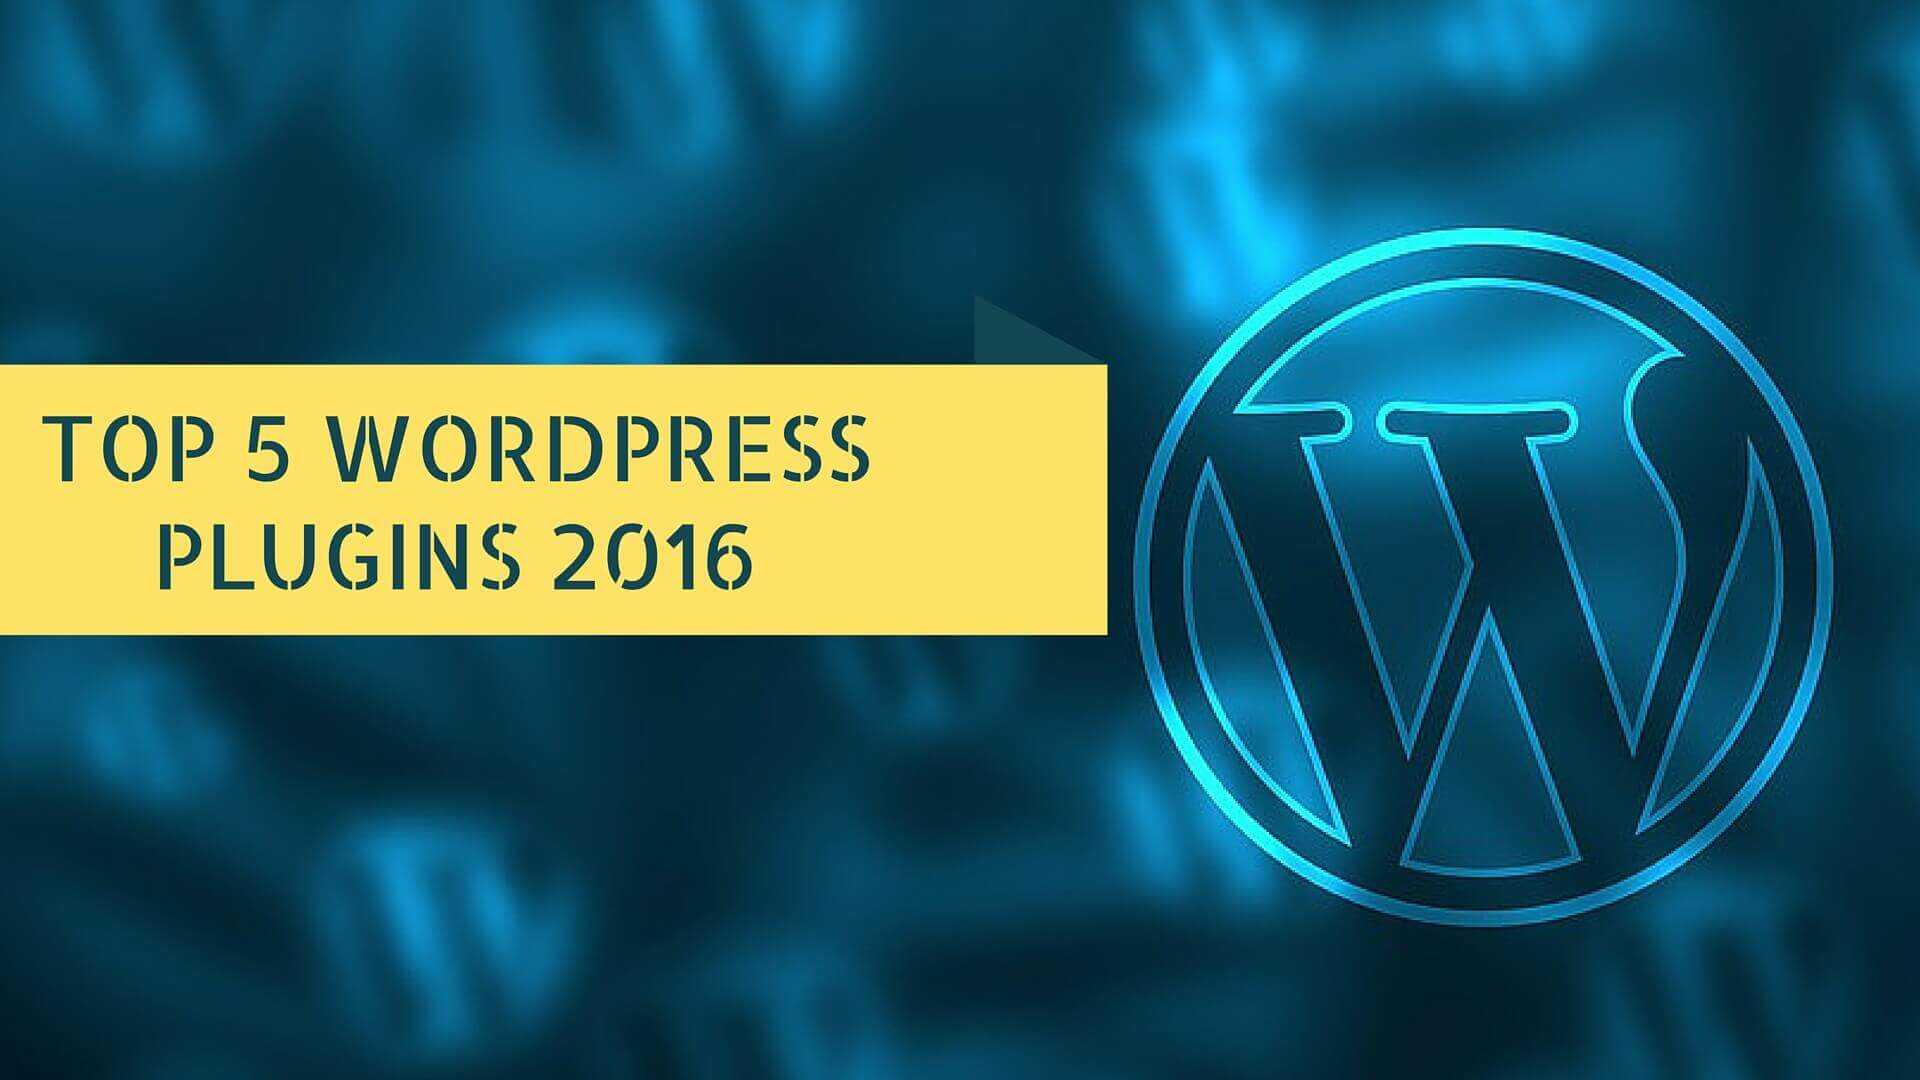 Top 5 wordpress plugins of 2016 featured image